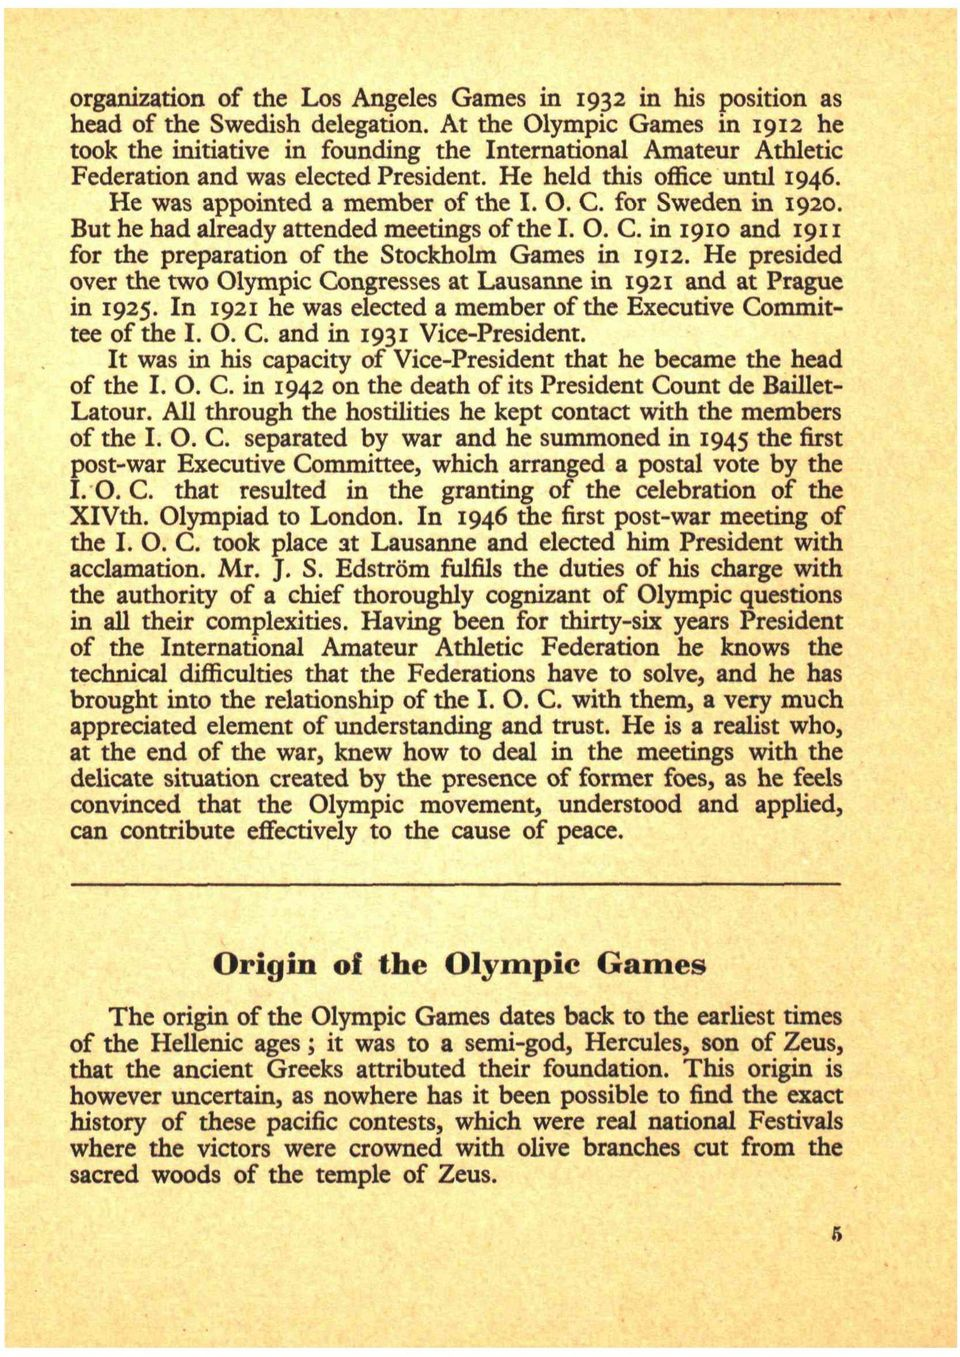 He was appointed a member of the I. O. C. for Sweden in 1920. But he had already attended meetings of the I. O. C. in 1910 and 1911 for the preparation of the Stockholm Games in 1912.